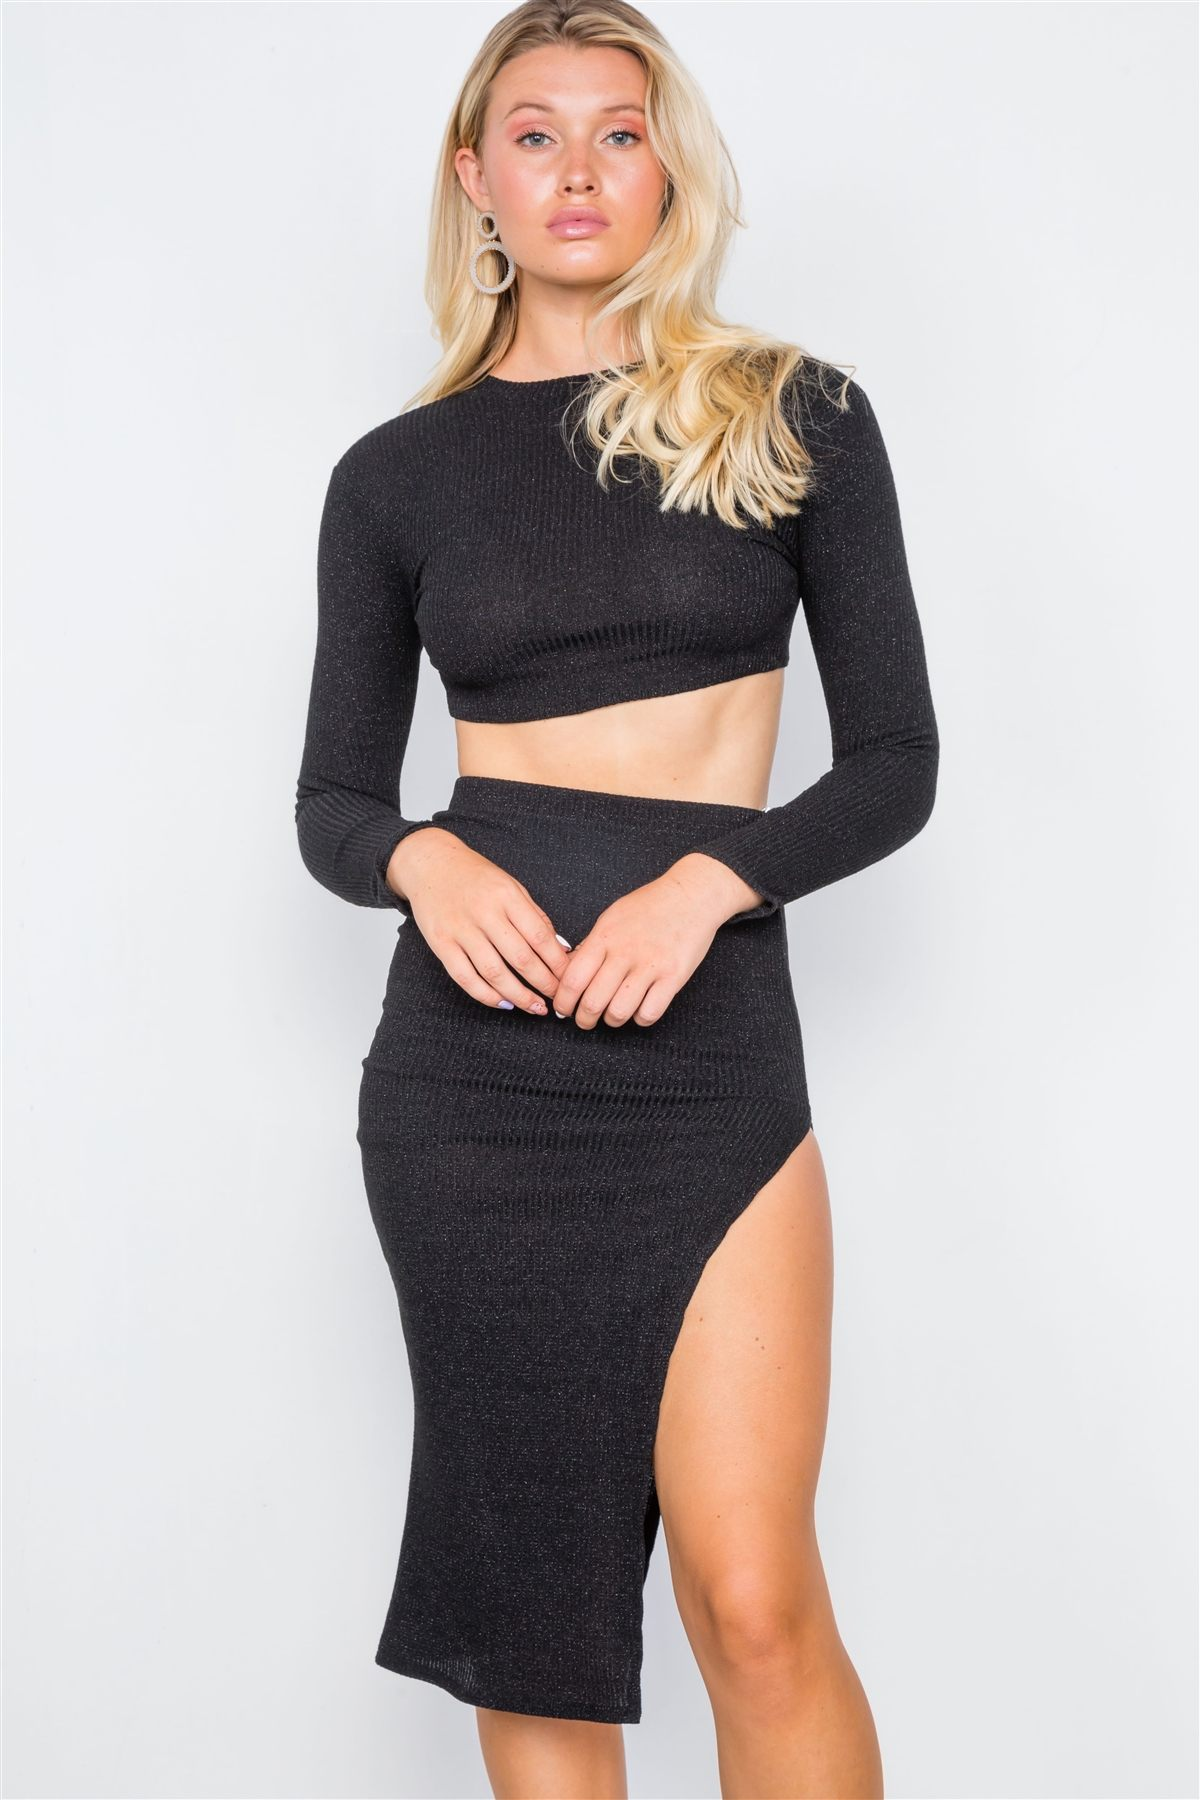 Knit Ribbed Two Piece Crop Top Skirt Set Id Cc39403